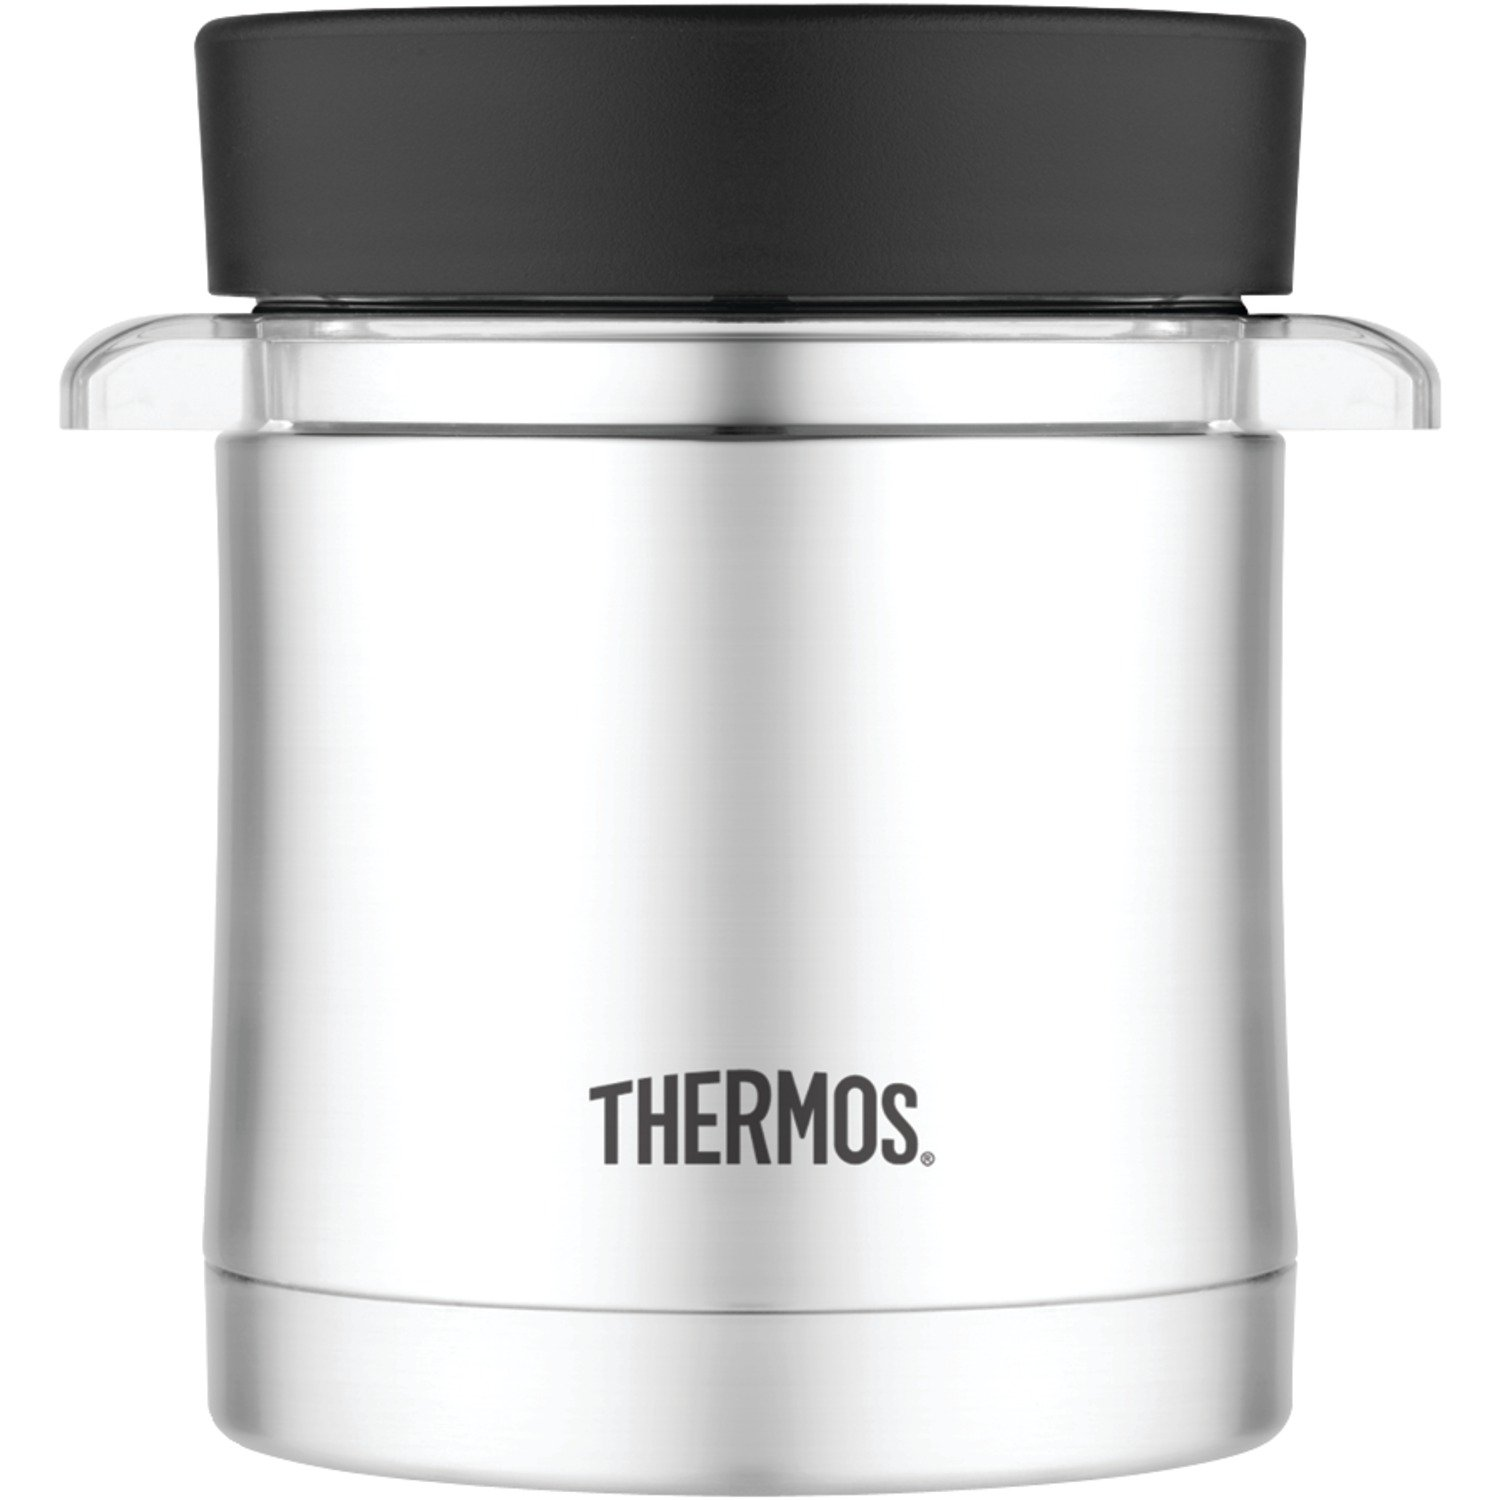 Thermos Food Jar with Microwavable Container, 12-Ounce, Stainless Steel